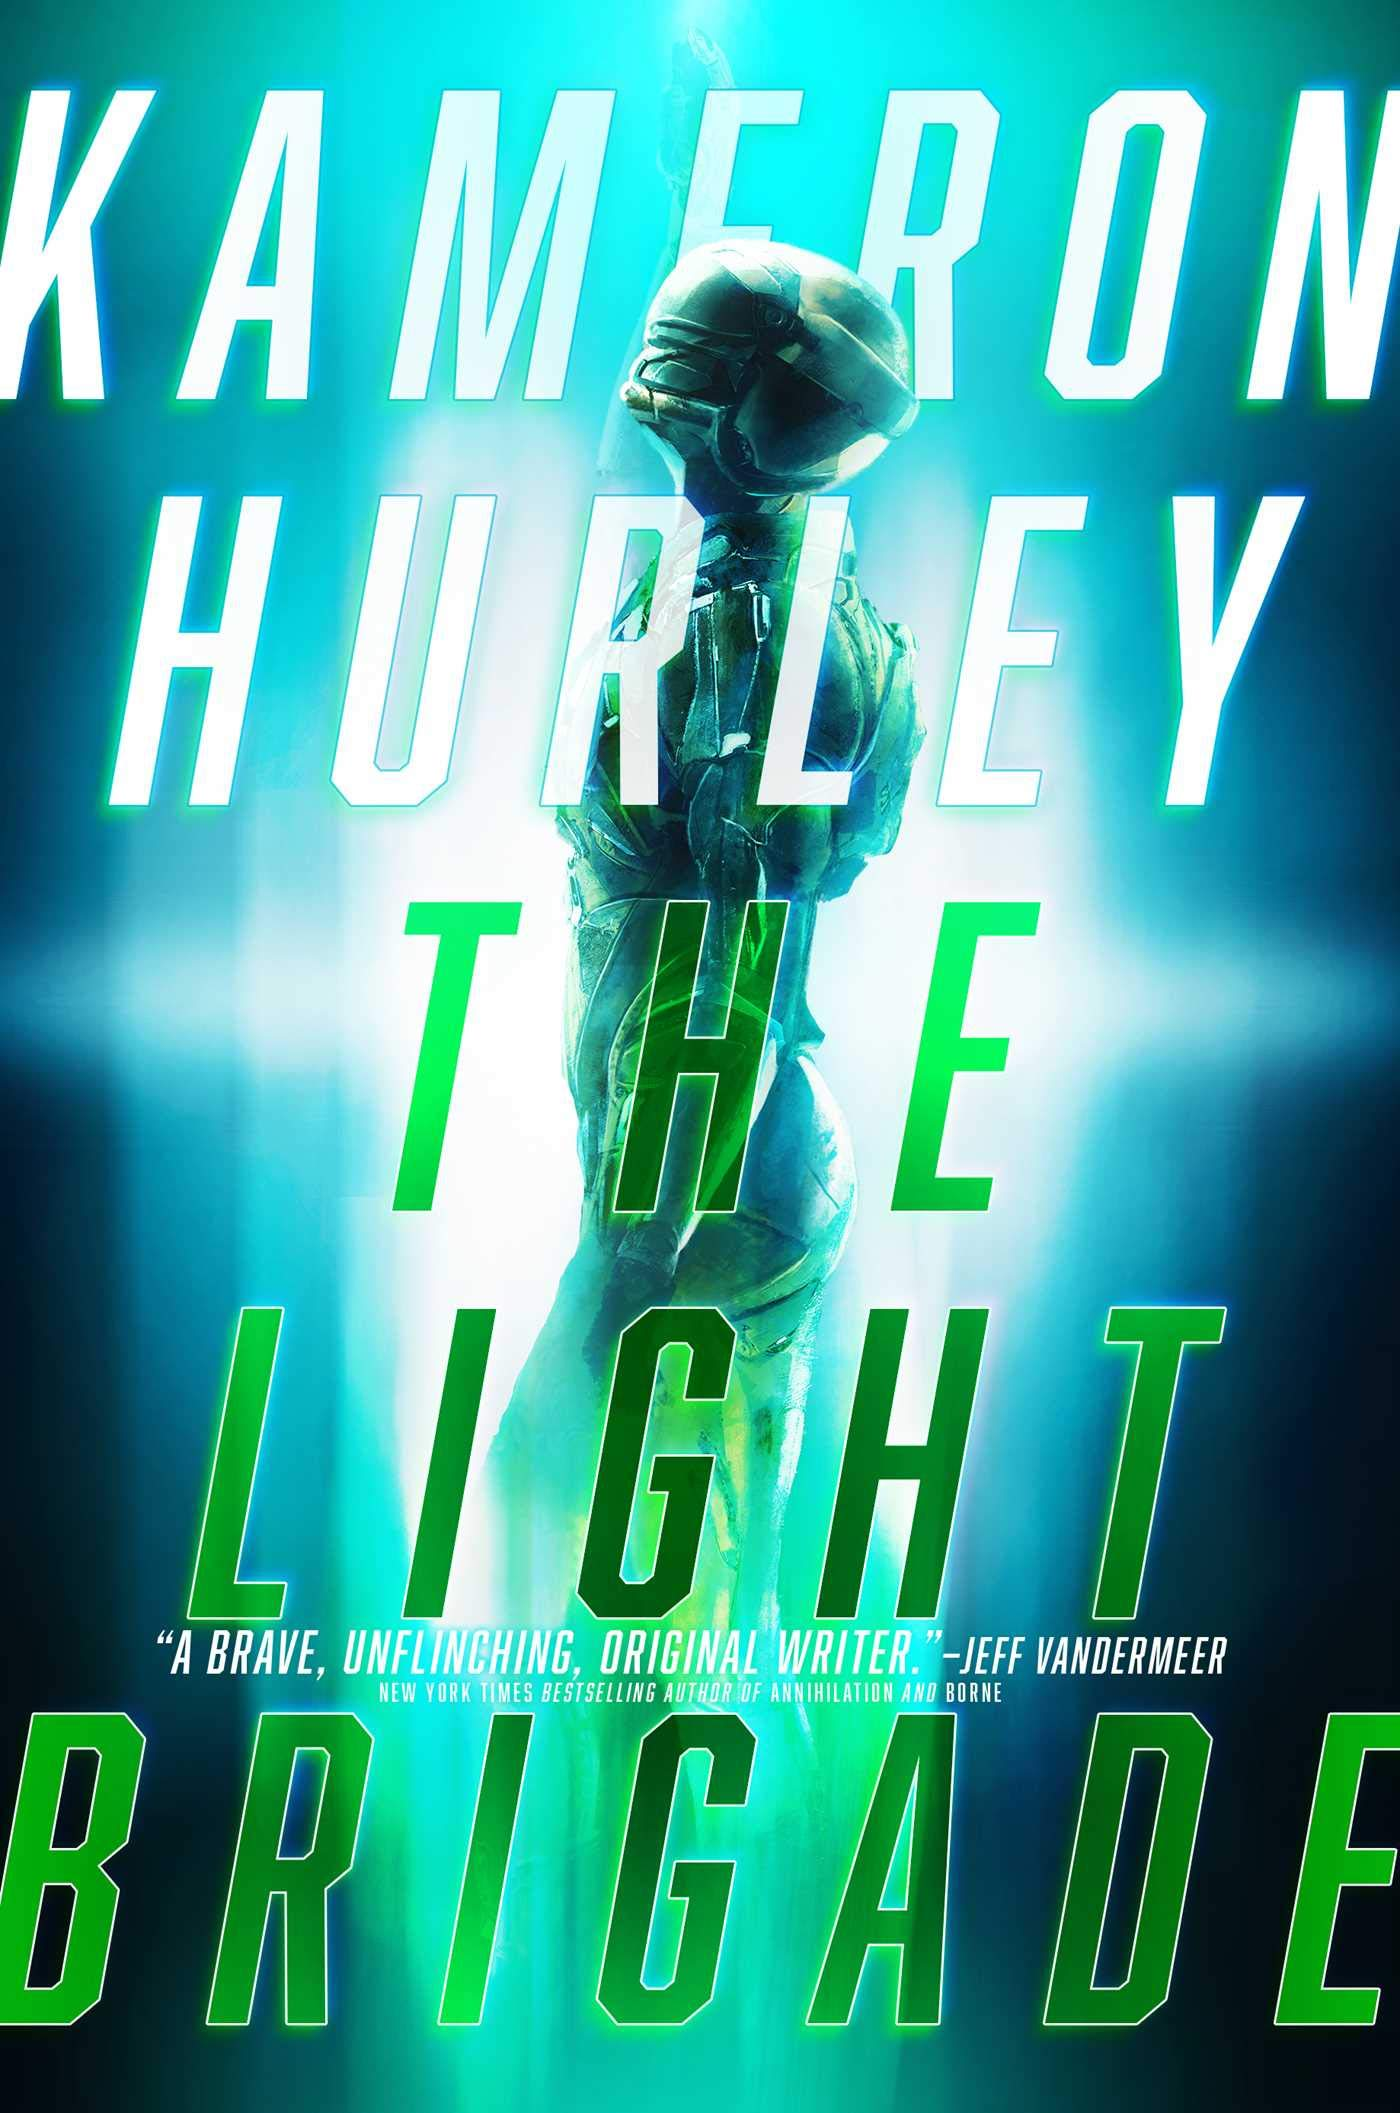 Kameron Hurley - The Light Brigade